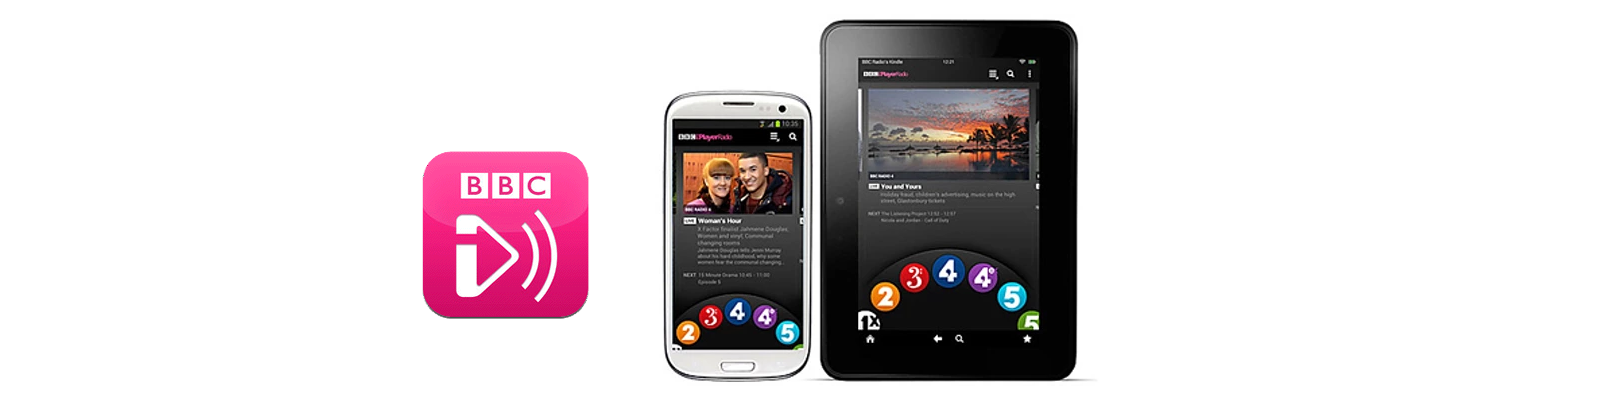 iplayer apps cost